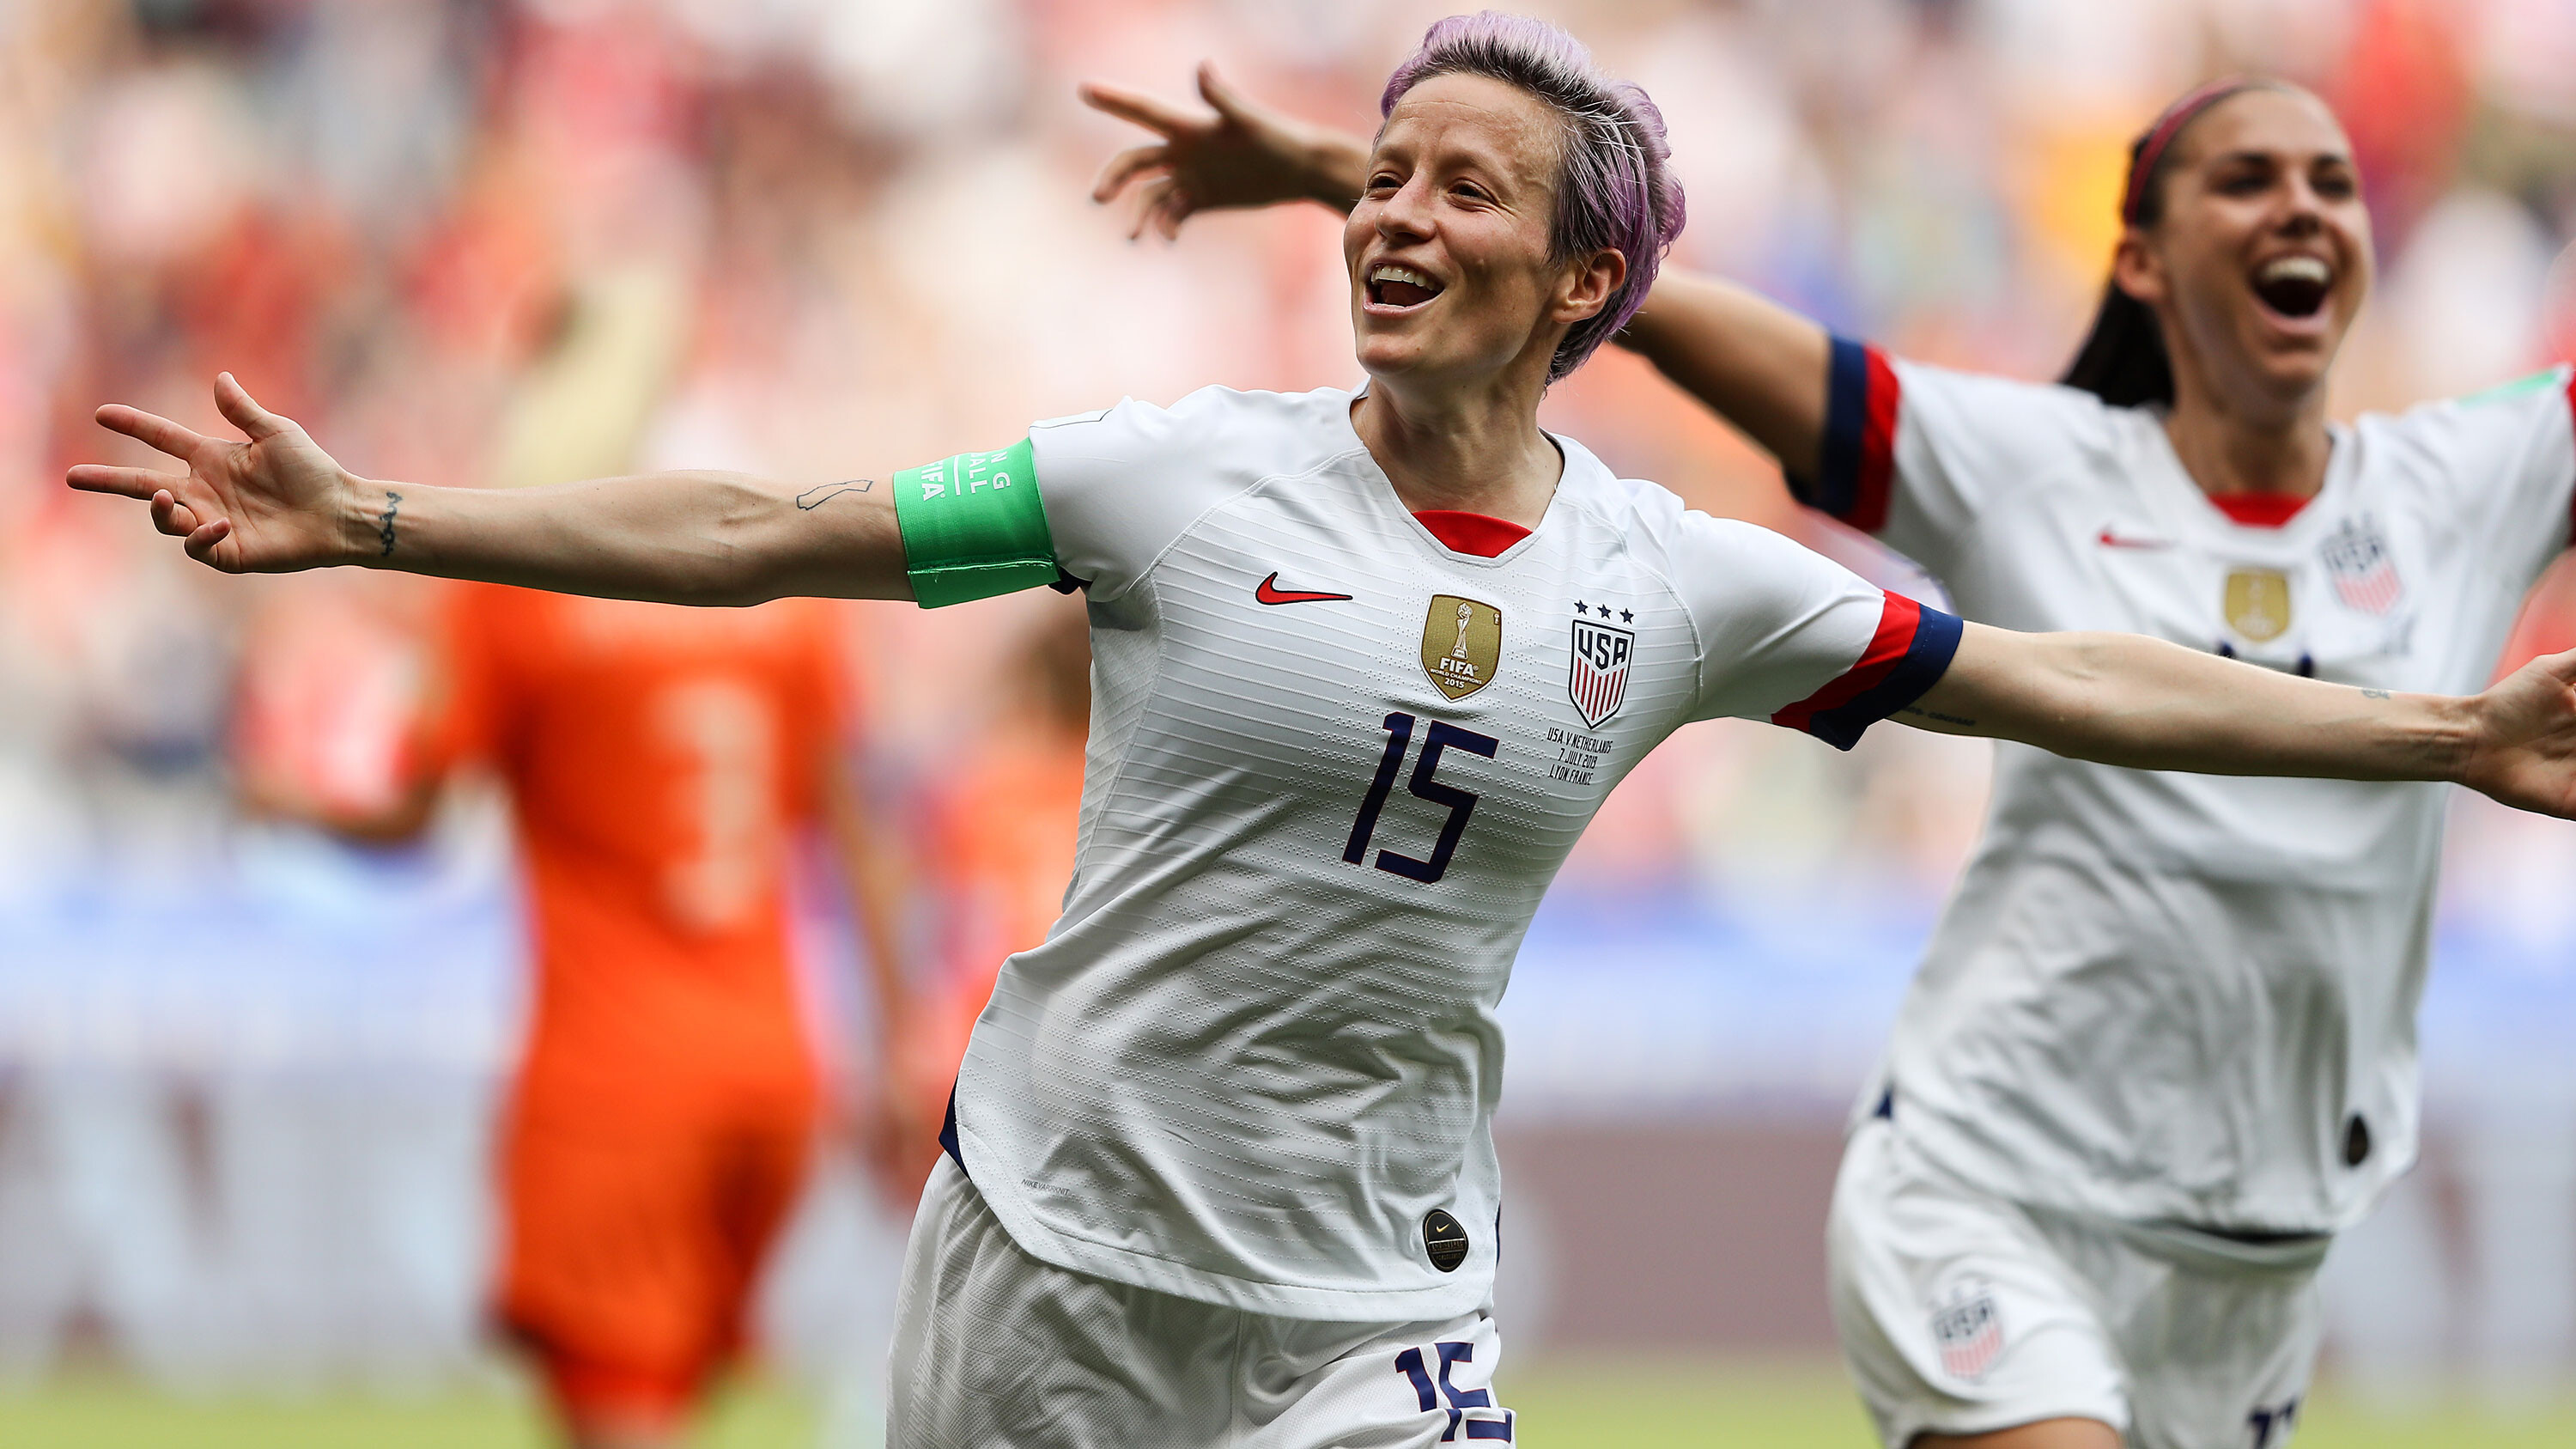 US women's national soccer team players appeal equal pay lawsuit decision